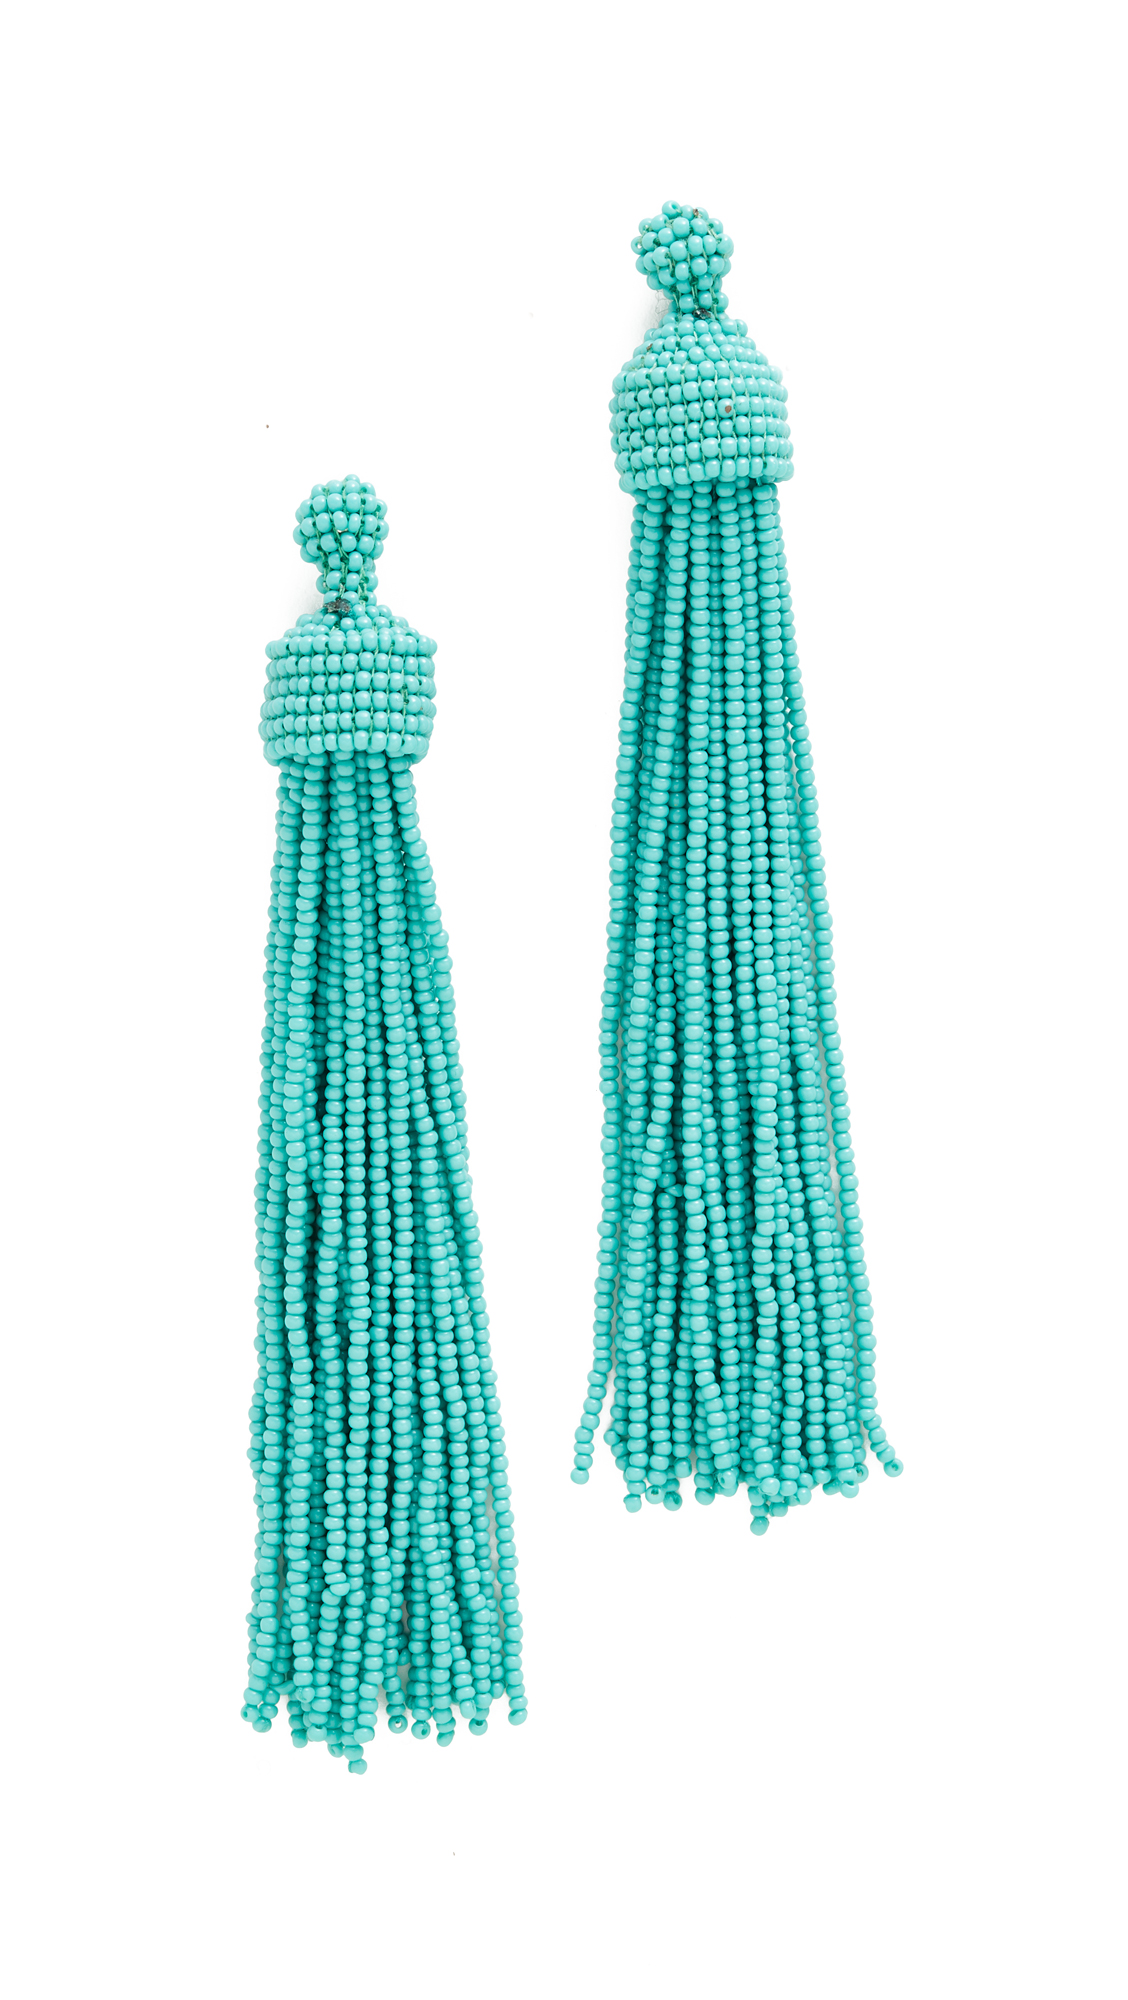 Kenneth Jay Lane Tassel Earrings